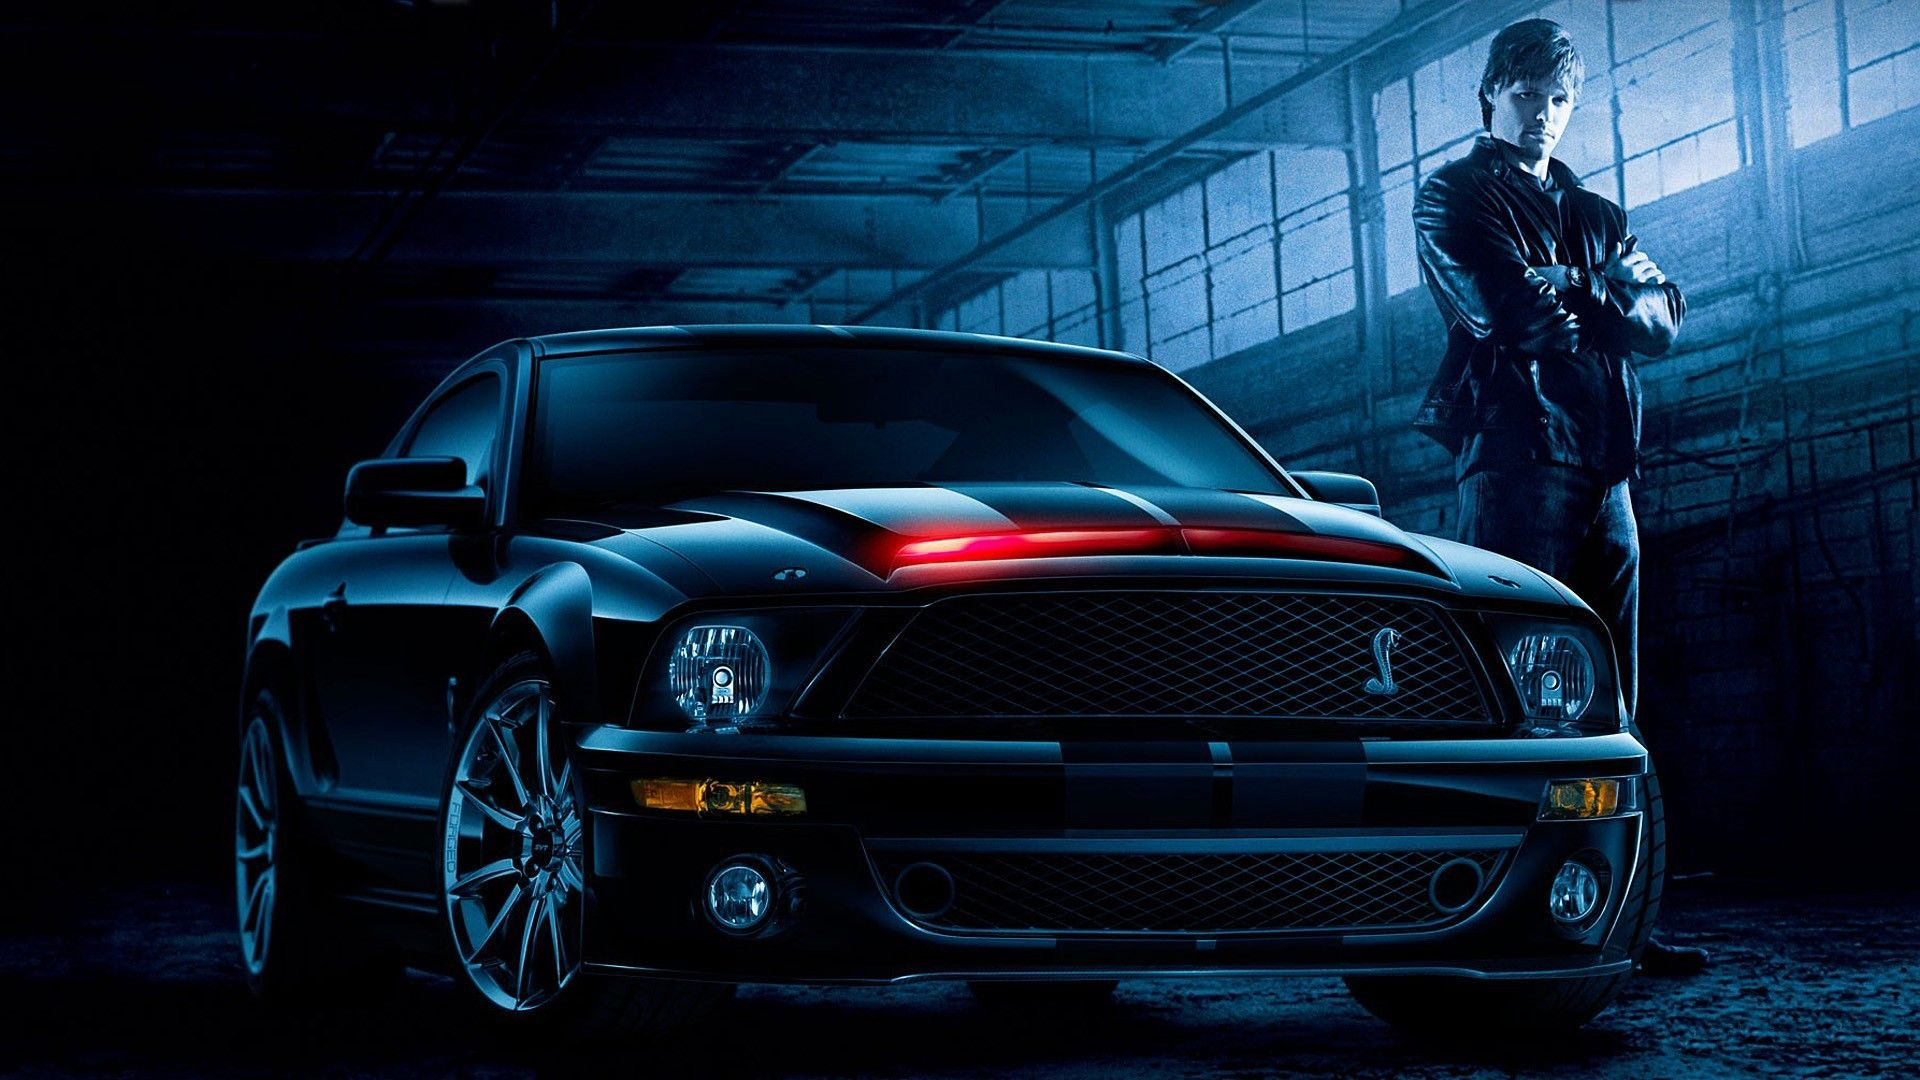 car Knight Rider Shelby Cobra KITT Wallpapers HD 1920x1080